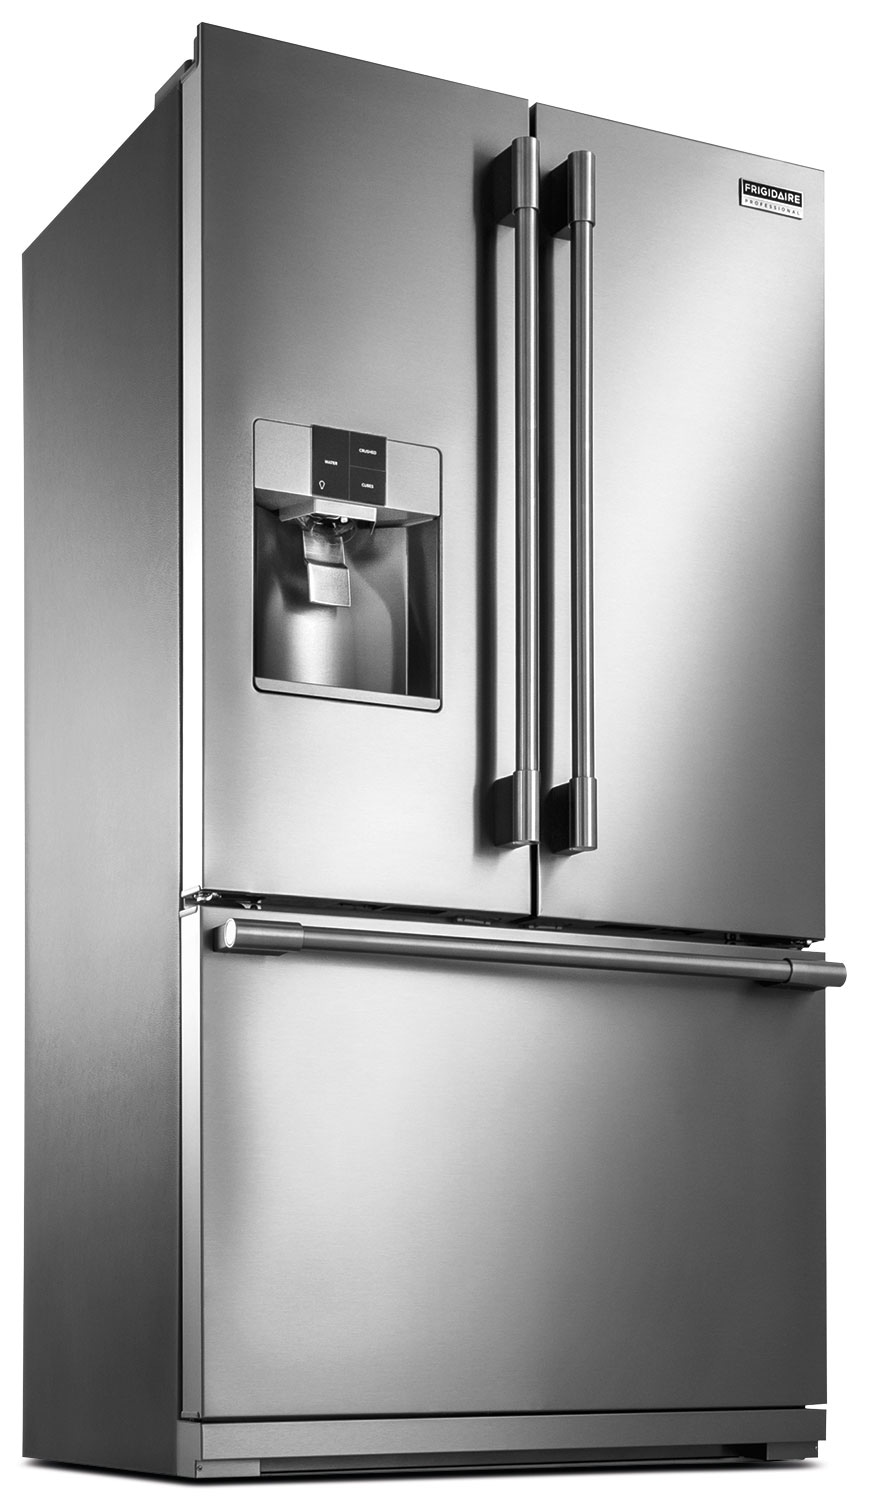 Refrigerators and Freezers - Frigidaire Professional 22.6 Cu. Ft. Refrigerator with Ice/Water Dispenser